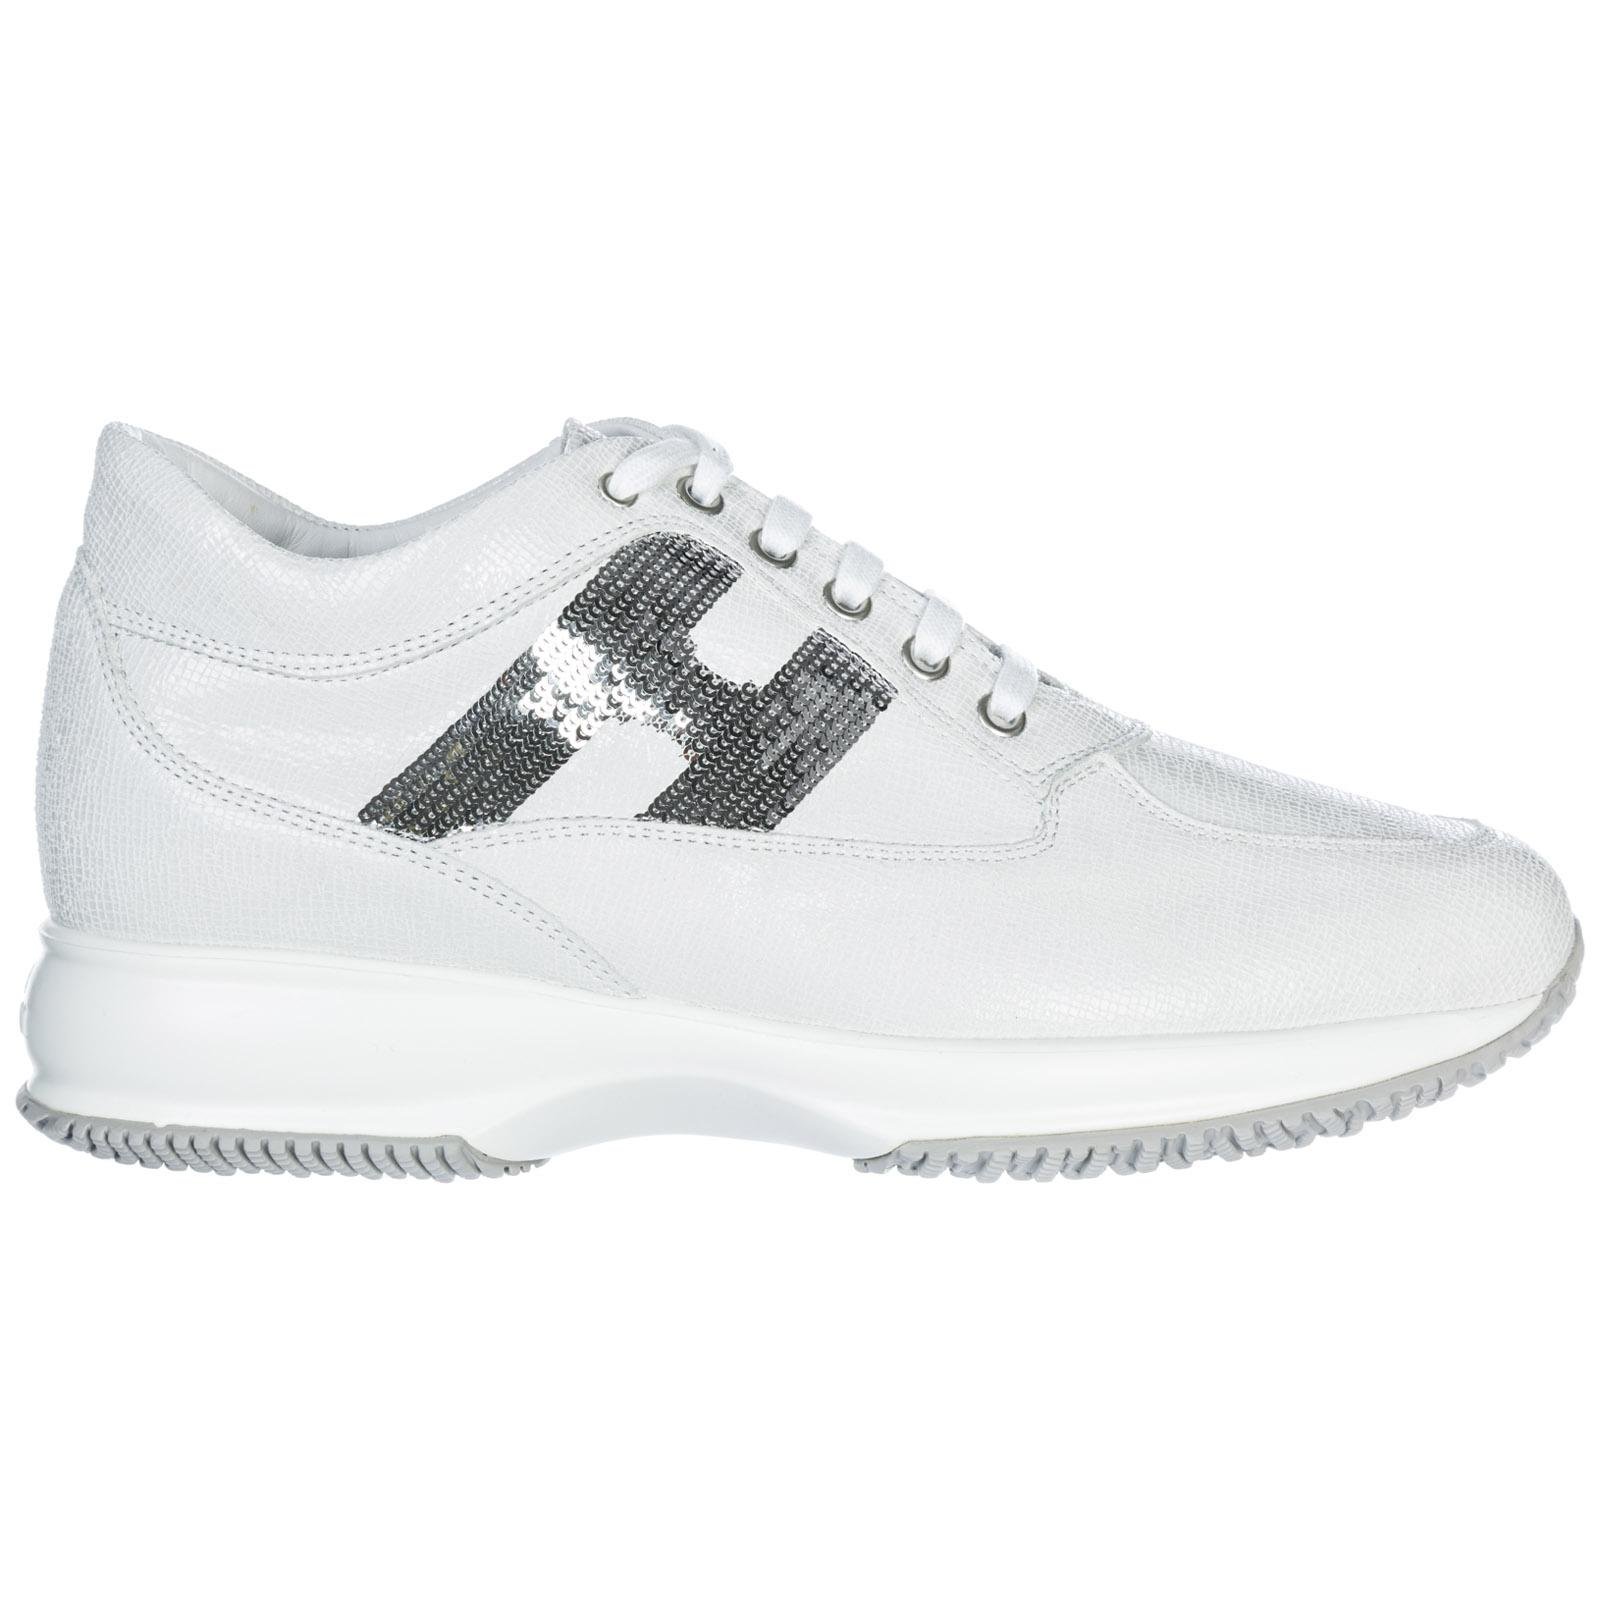 Hogan Women's Shoes Leather Trainers Sneakers Interactive In White